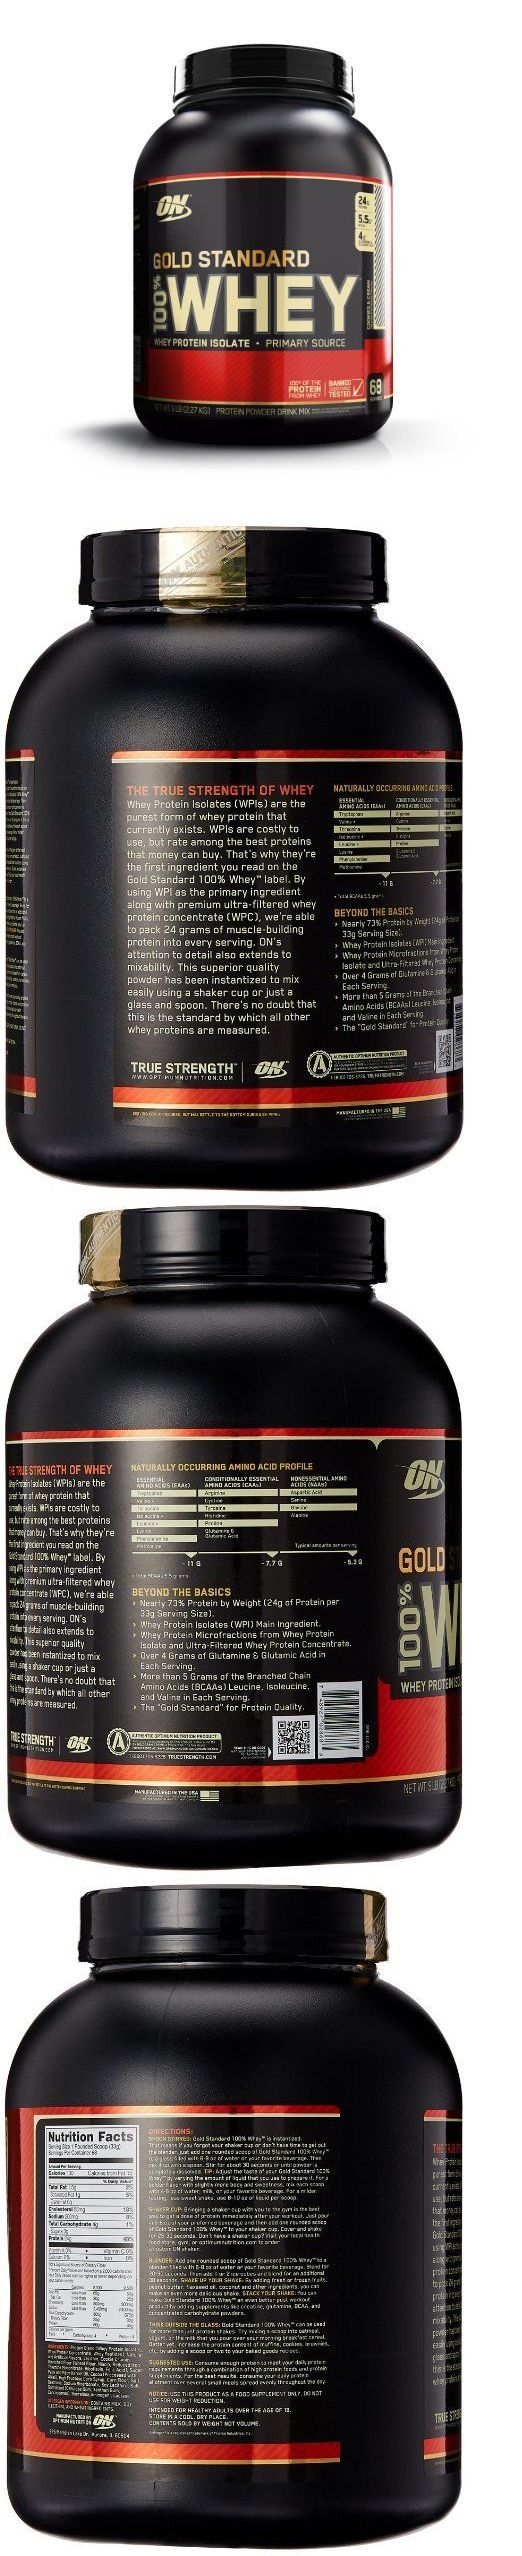 Protein Shakes and Bodybuilding: Optimum Nutrition 100% Whey Protein Gold Standard 5 Lbs >>> Pick Your Flavor<<< BUY IT NOW ONLY: $69.99